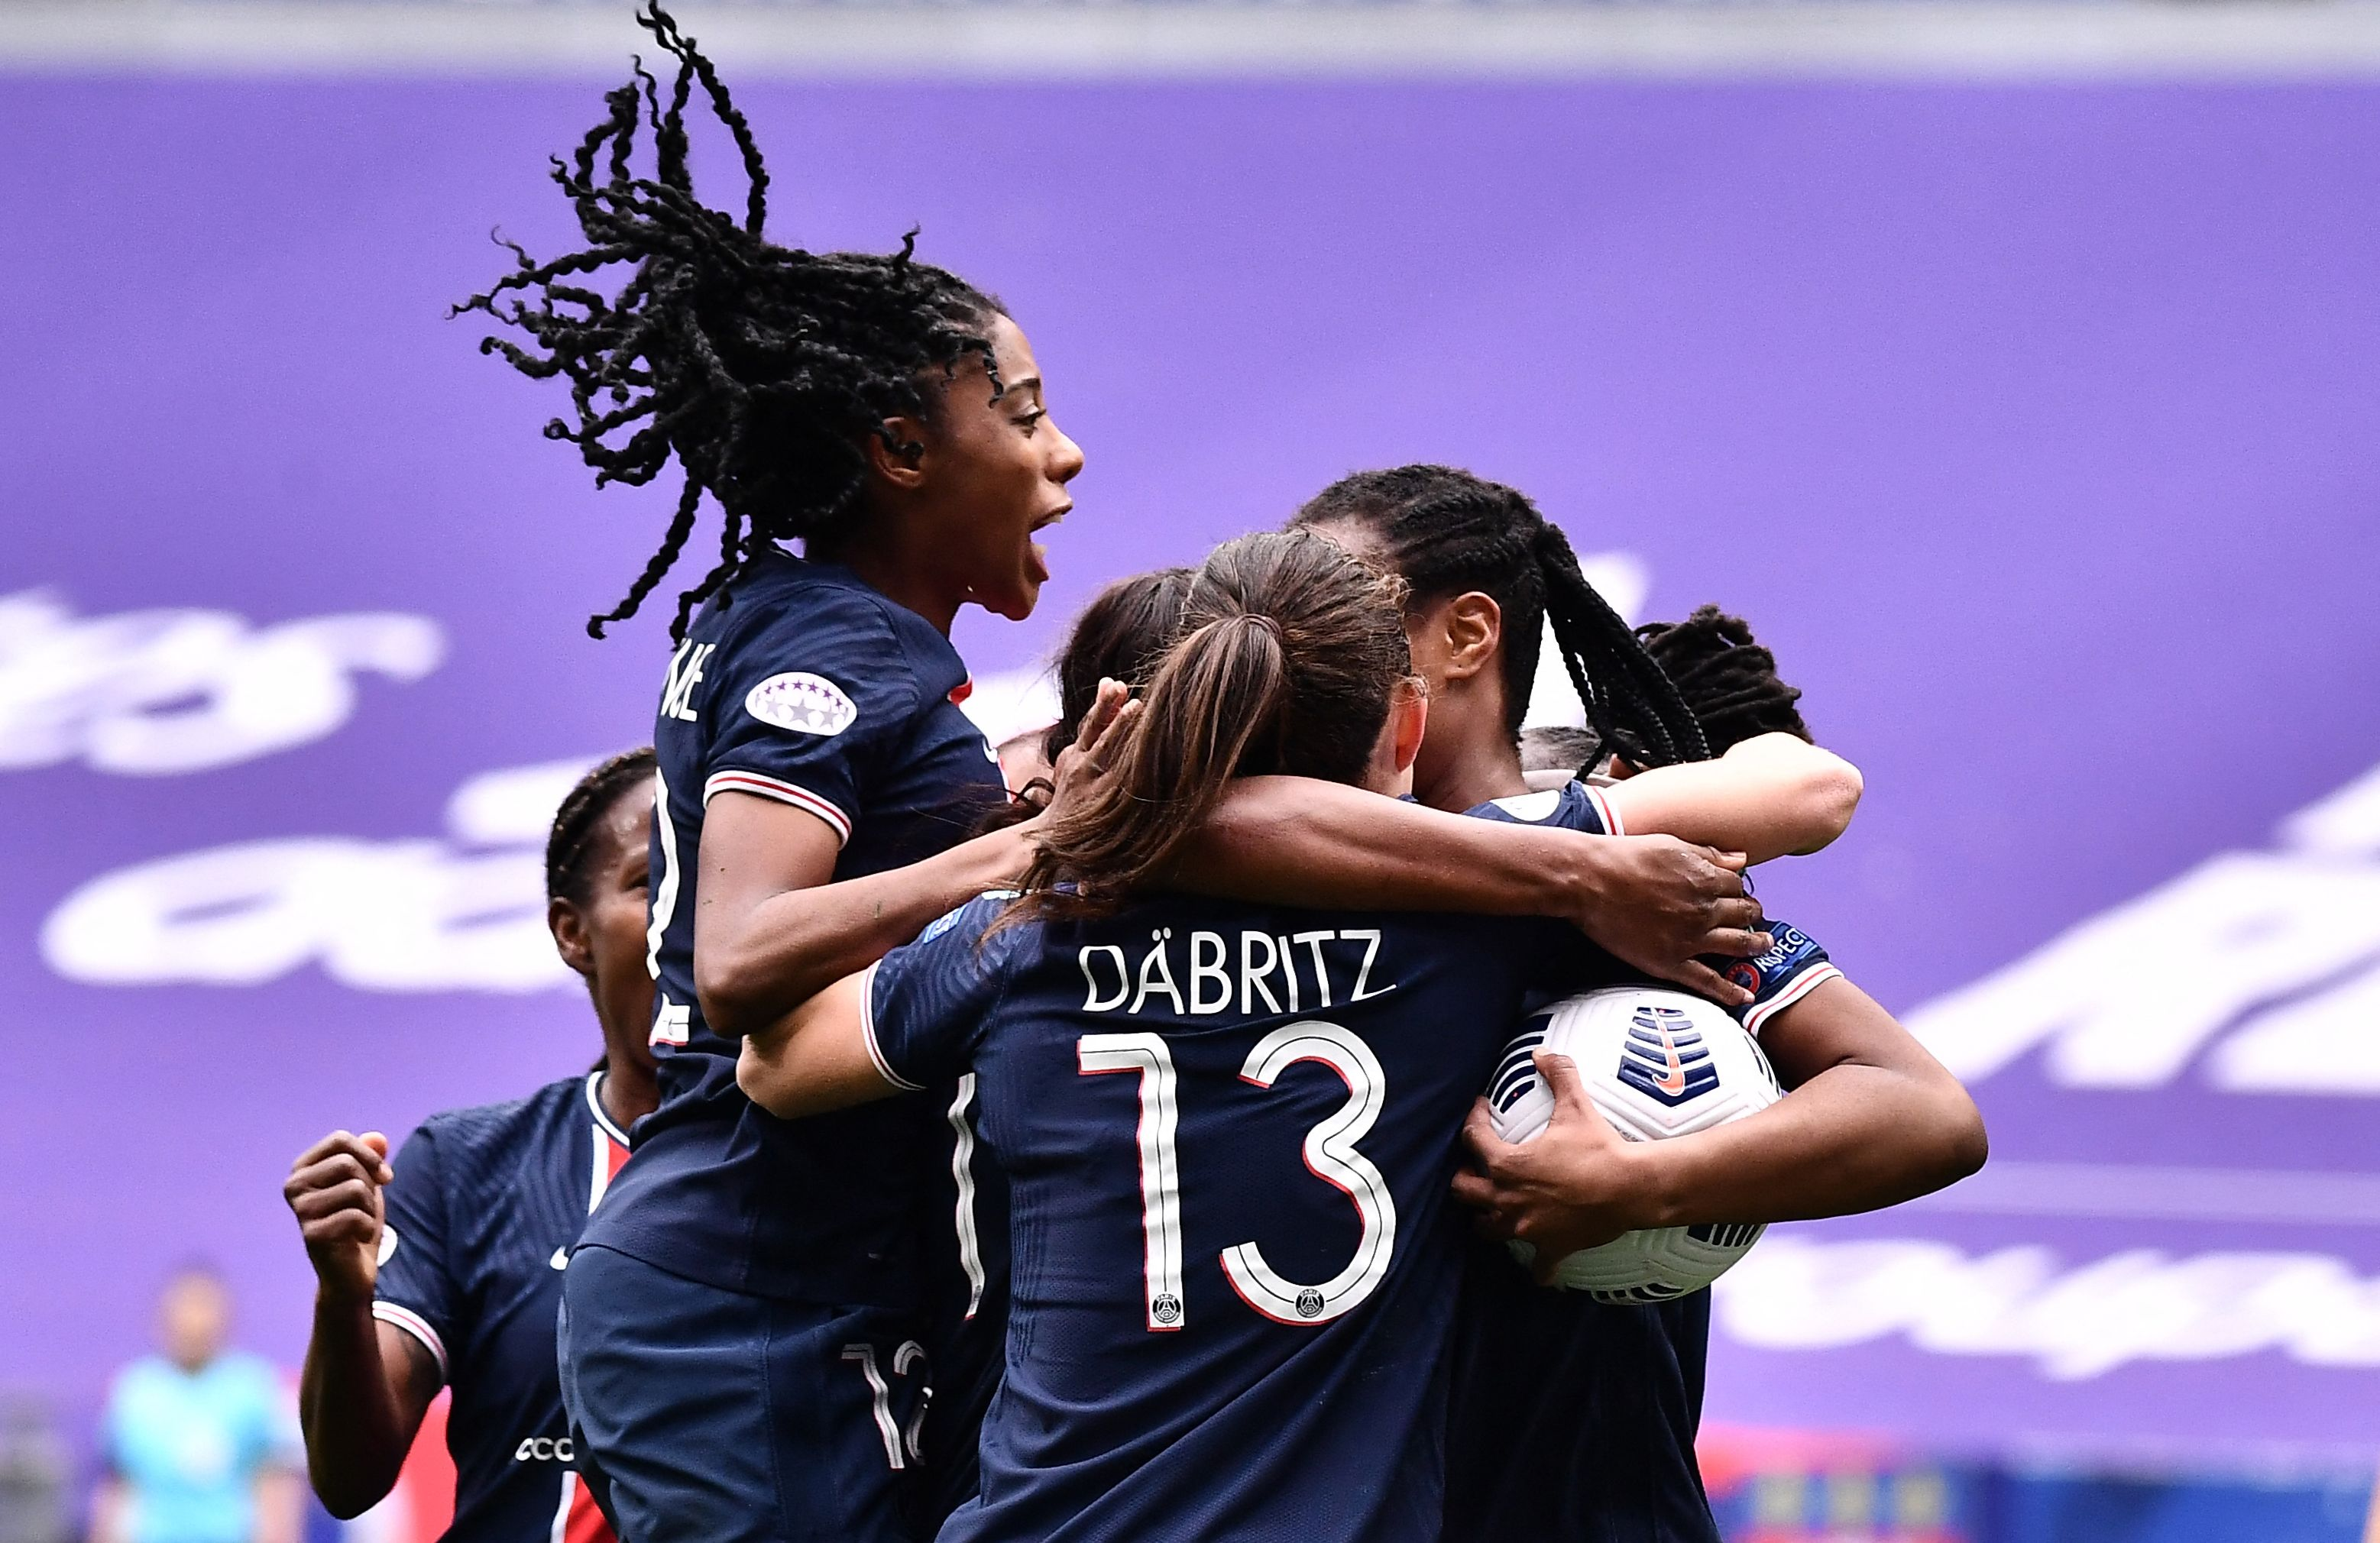 Paris Saint-Germain ends Lyon's stranglehold on Women's Champions League